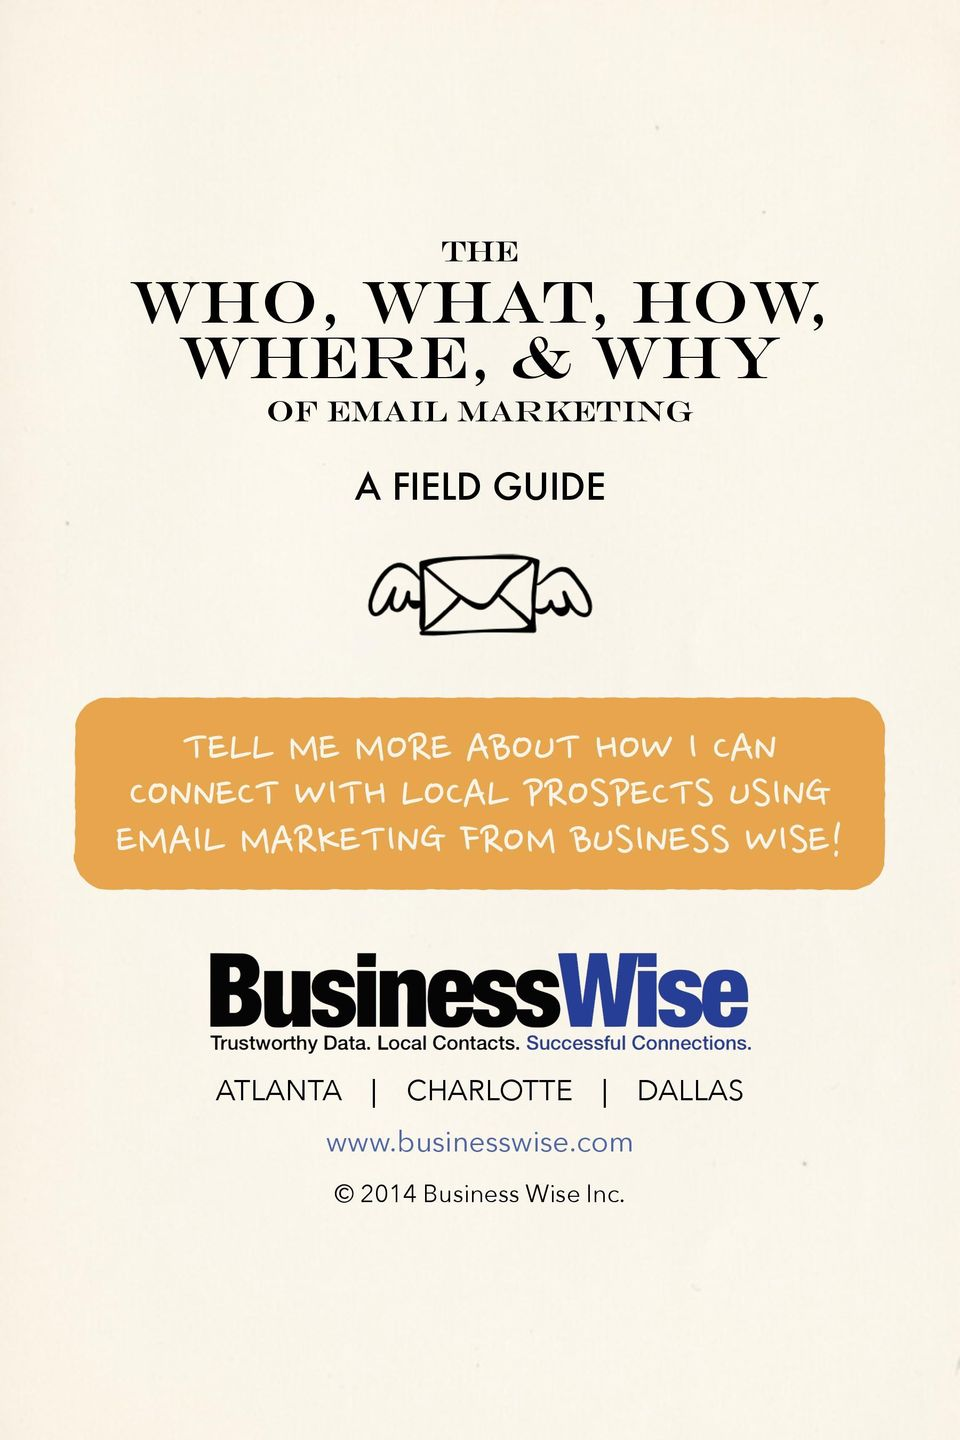 LOCAL PROSPECTS USING EMAIL MARKETING FROM BUSINESS WISE!